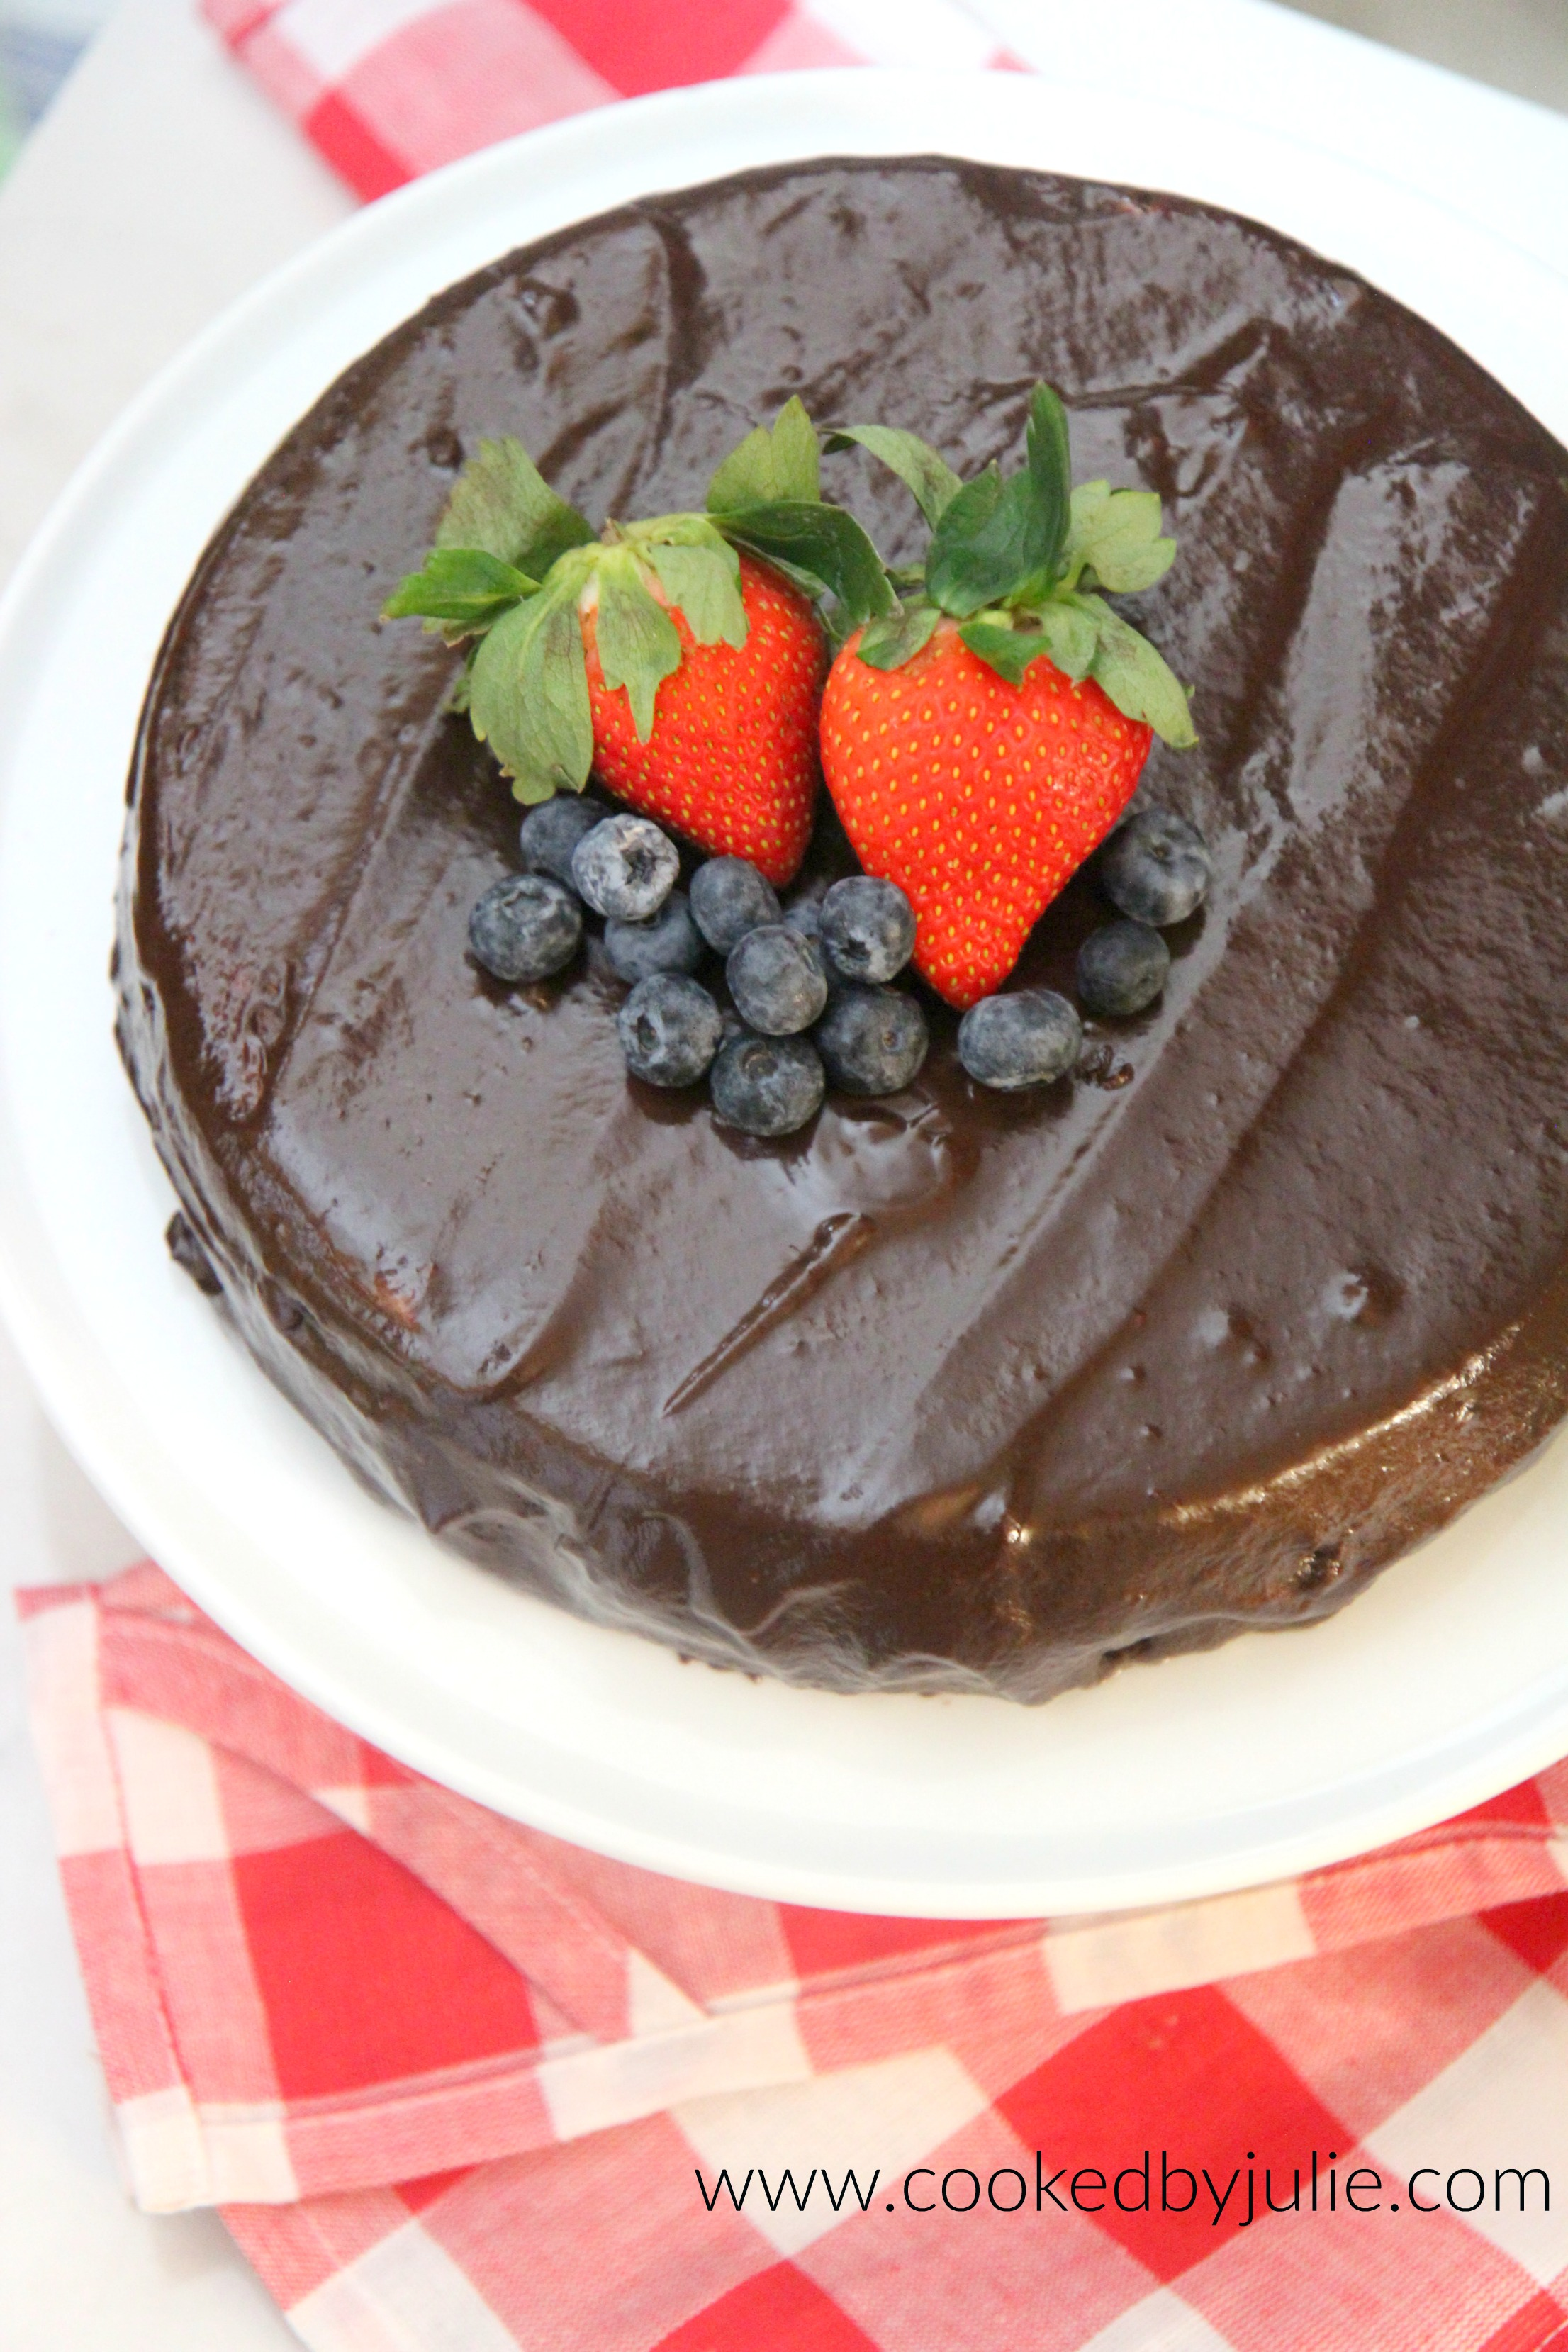 This nutella cheesecake is a chocolate lovers dream! It's the perfect date night dessert.